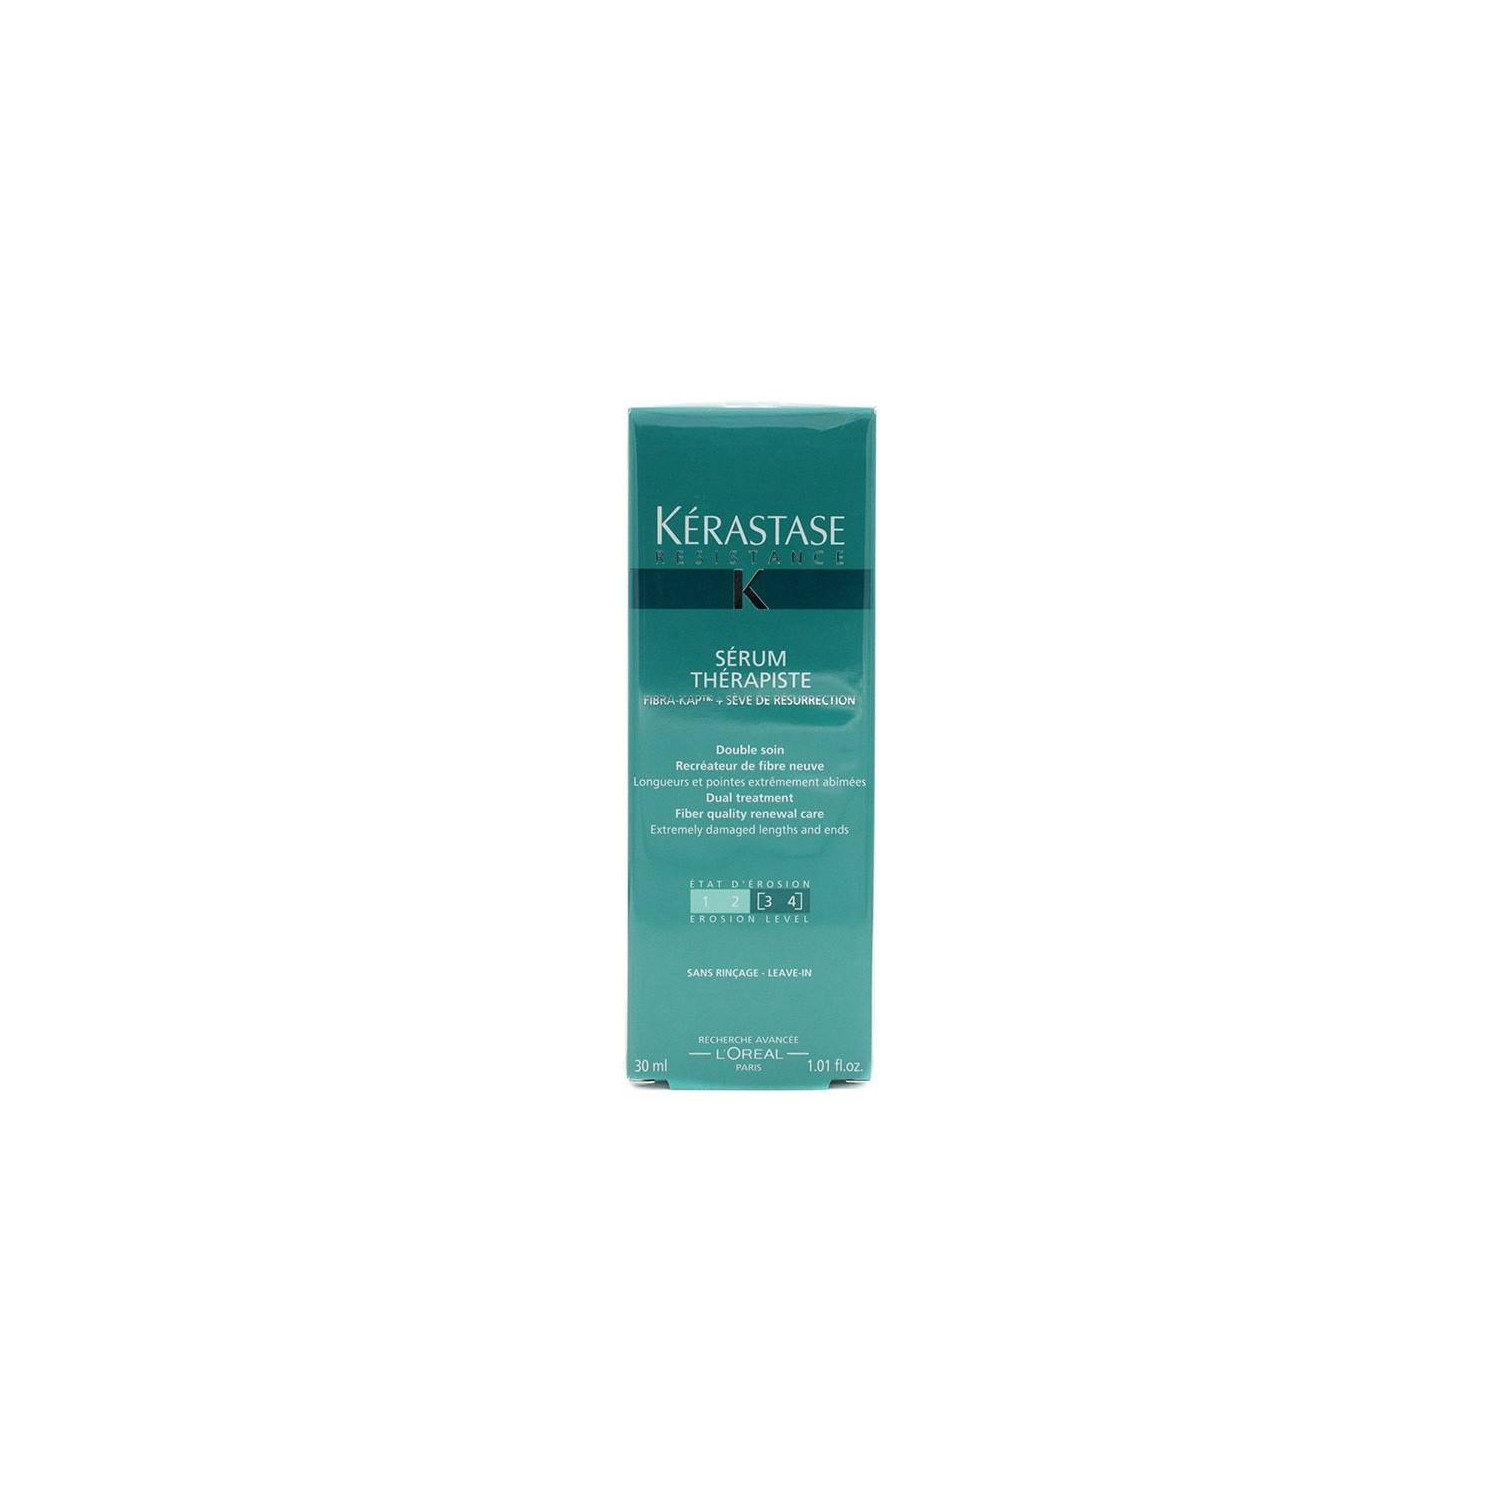 Kerastase Resistence Serum Therapiste 30 Ml